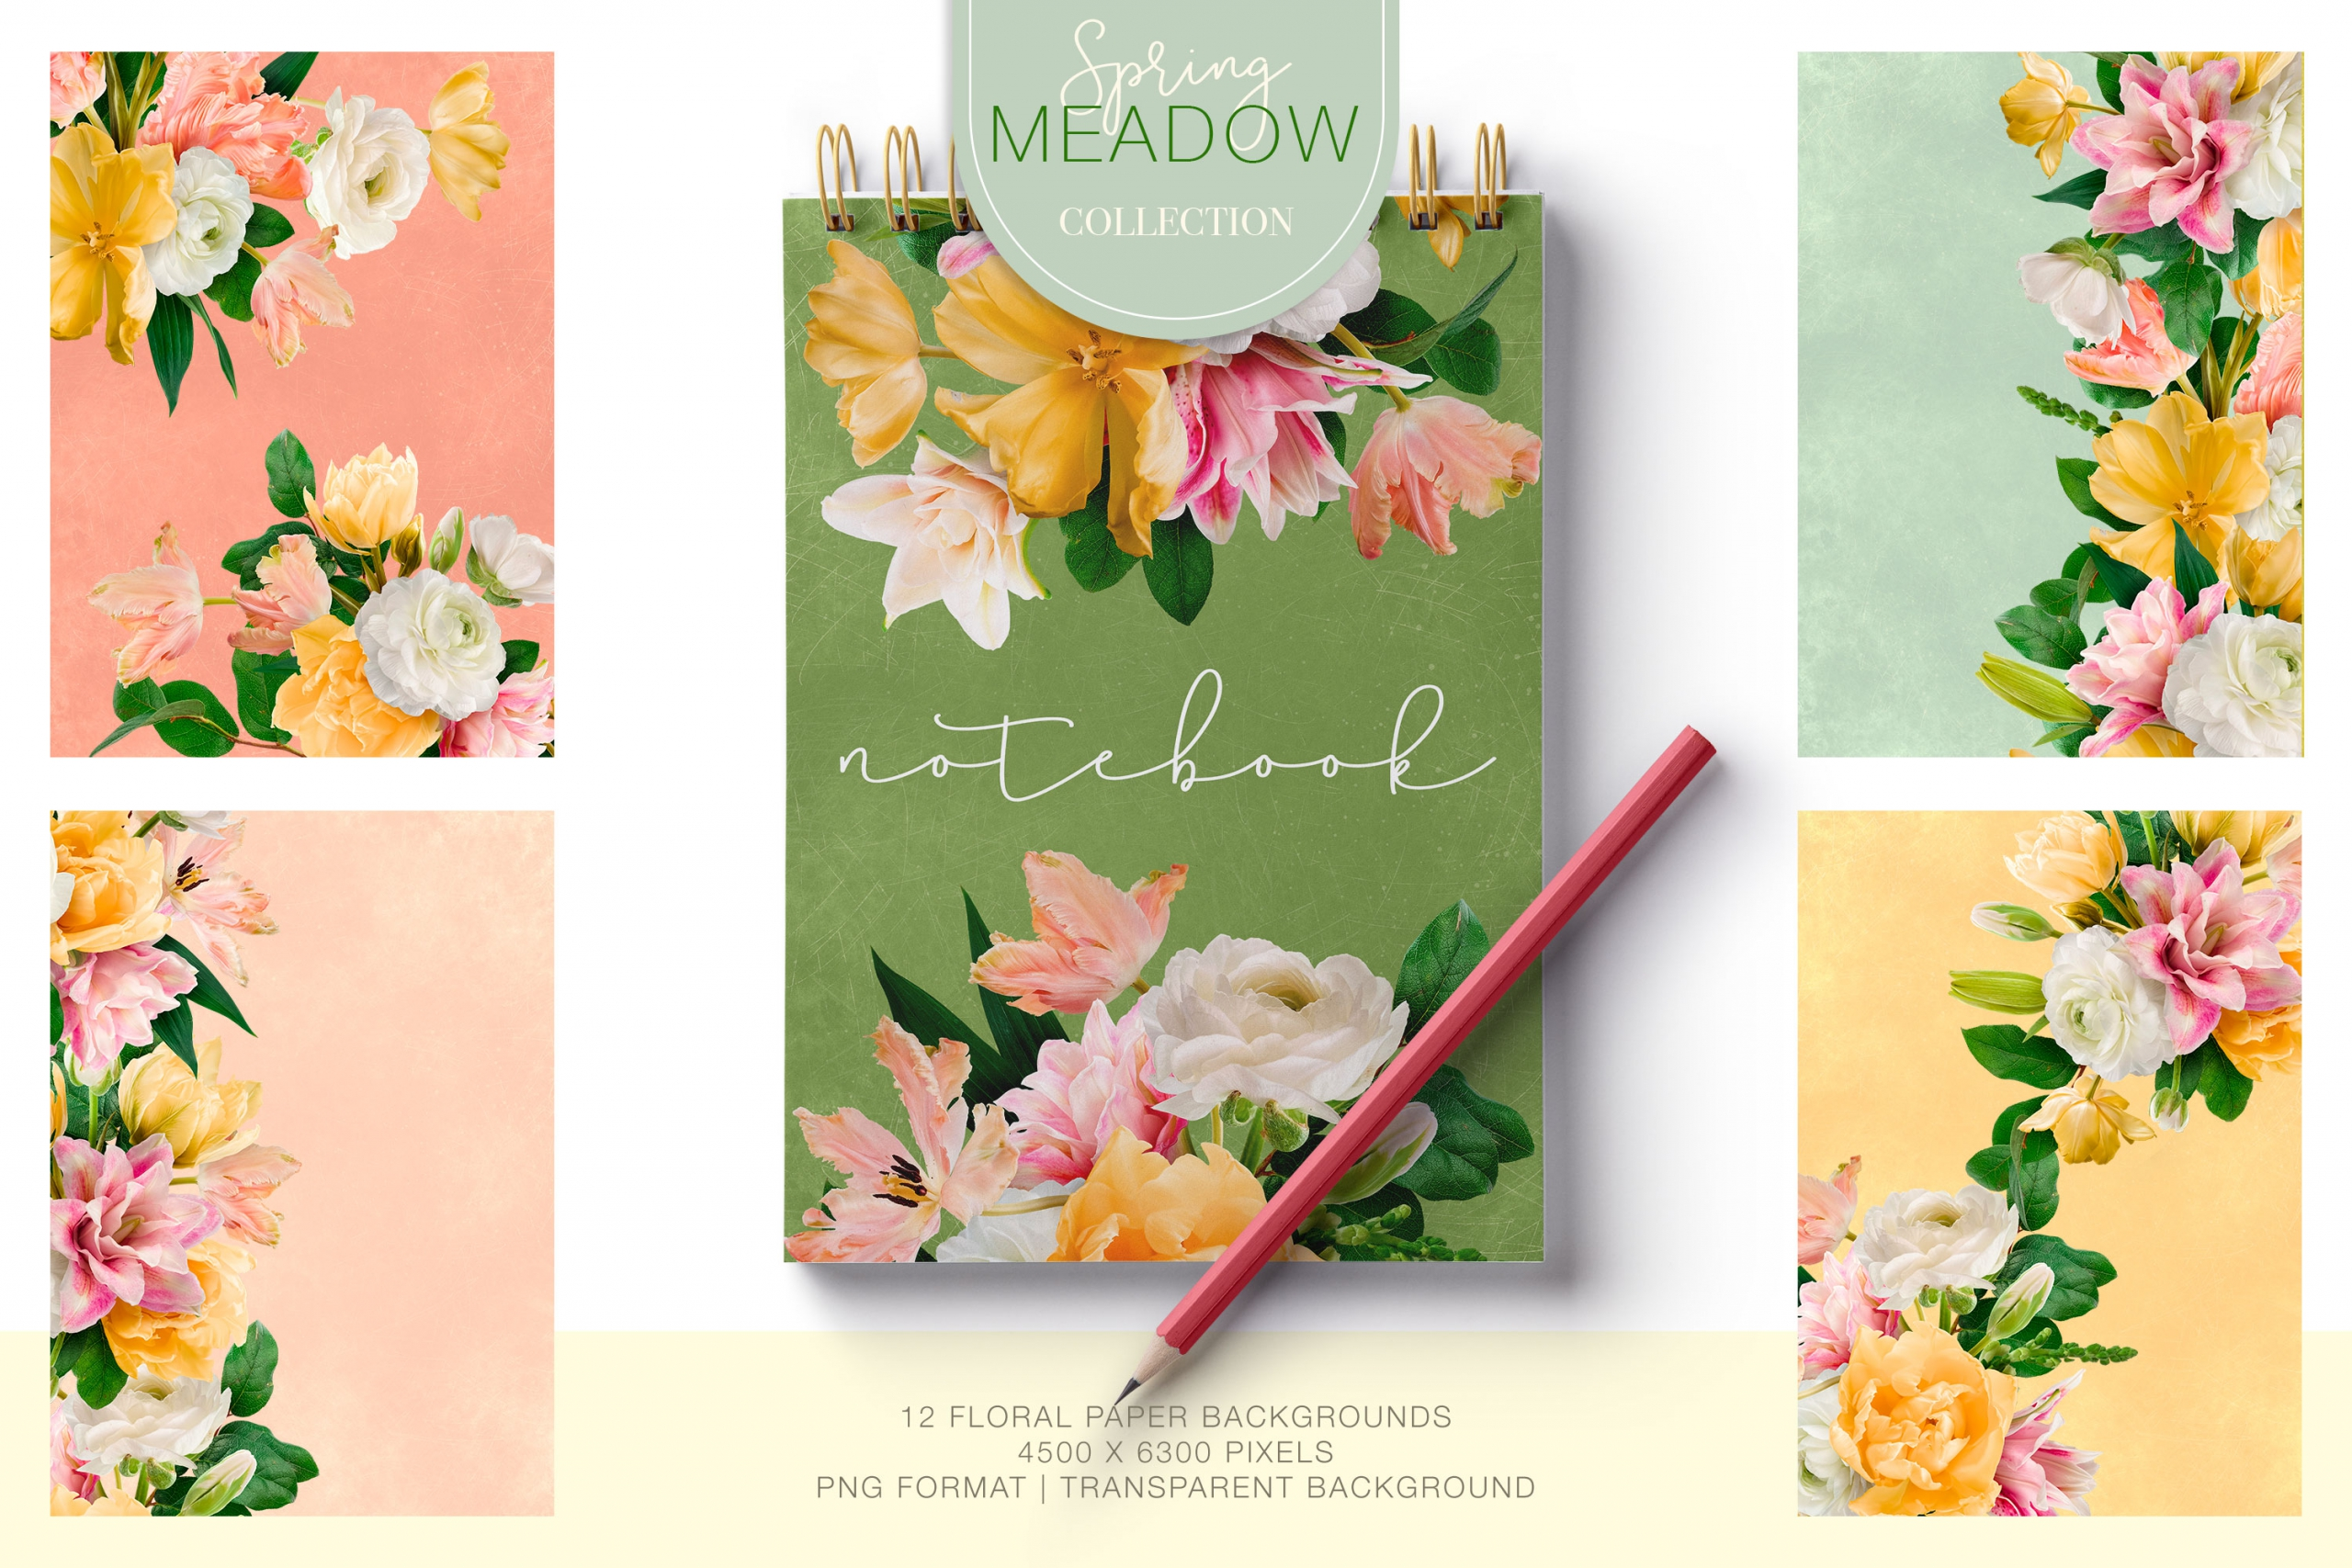 Meadow Floral Clipart Collection